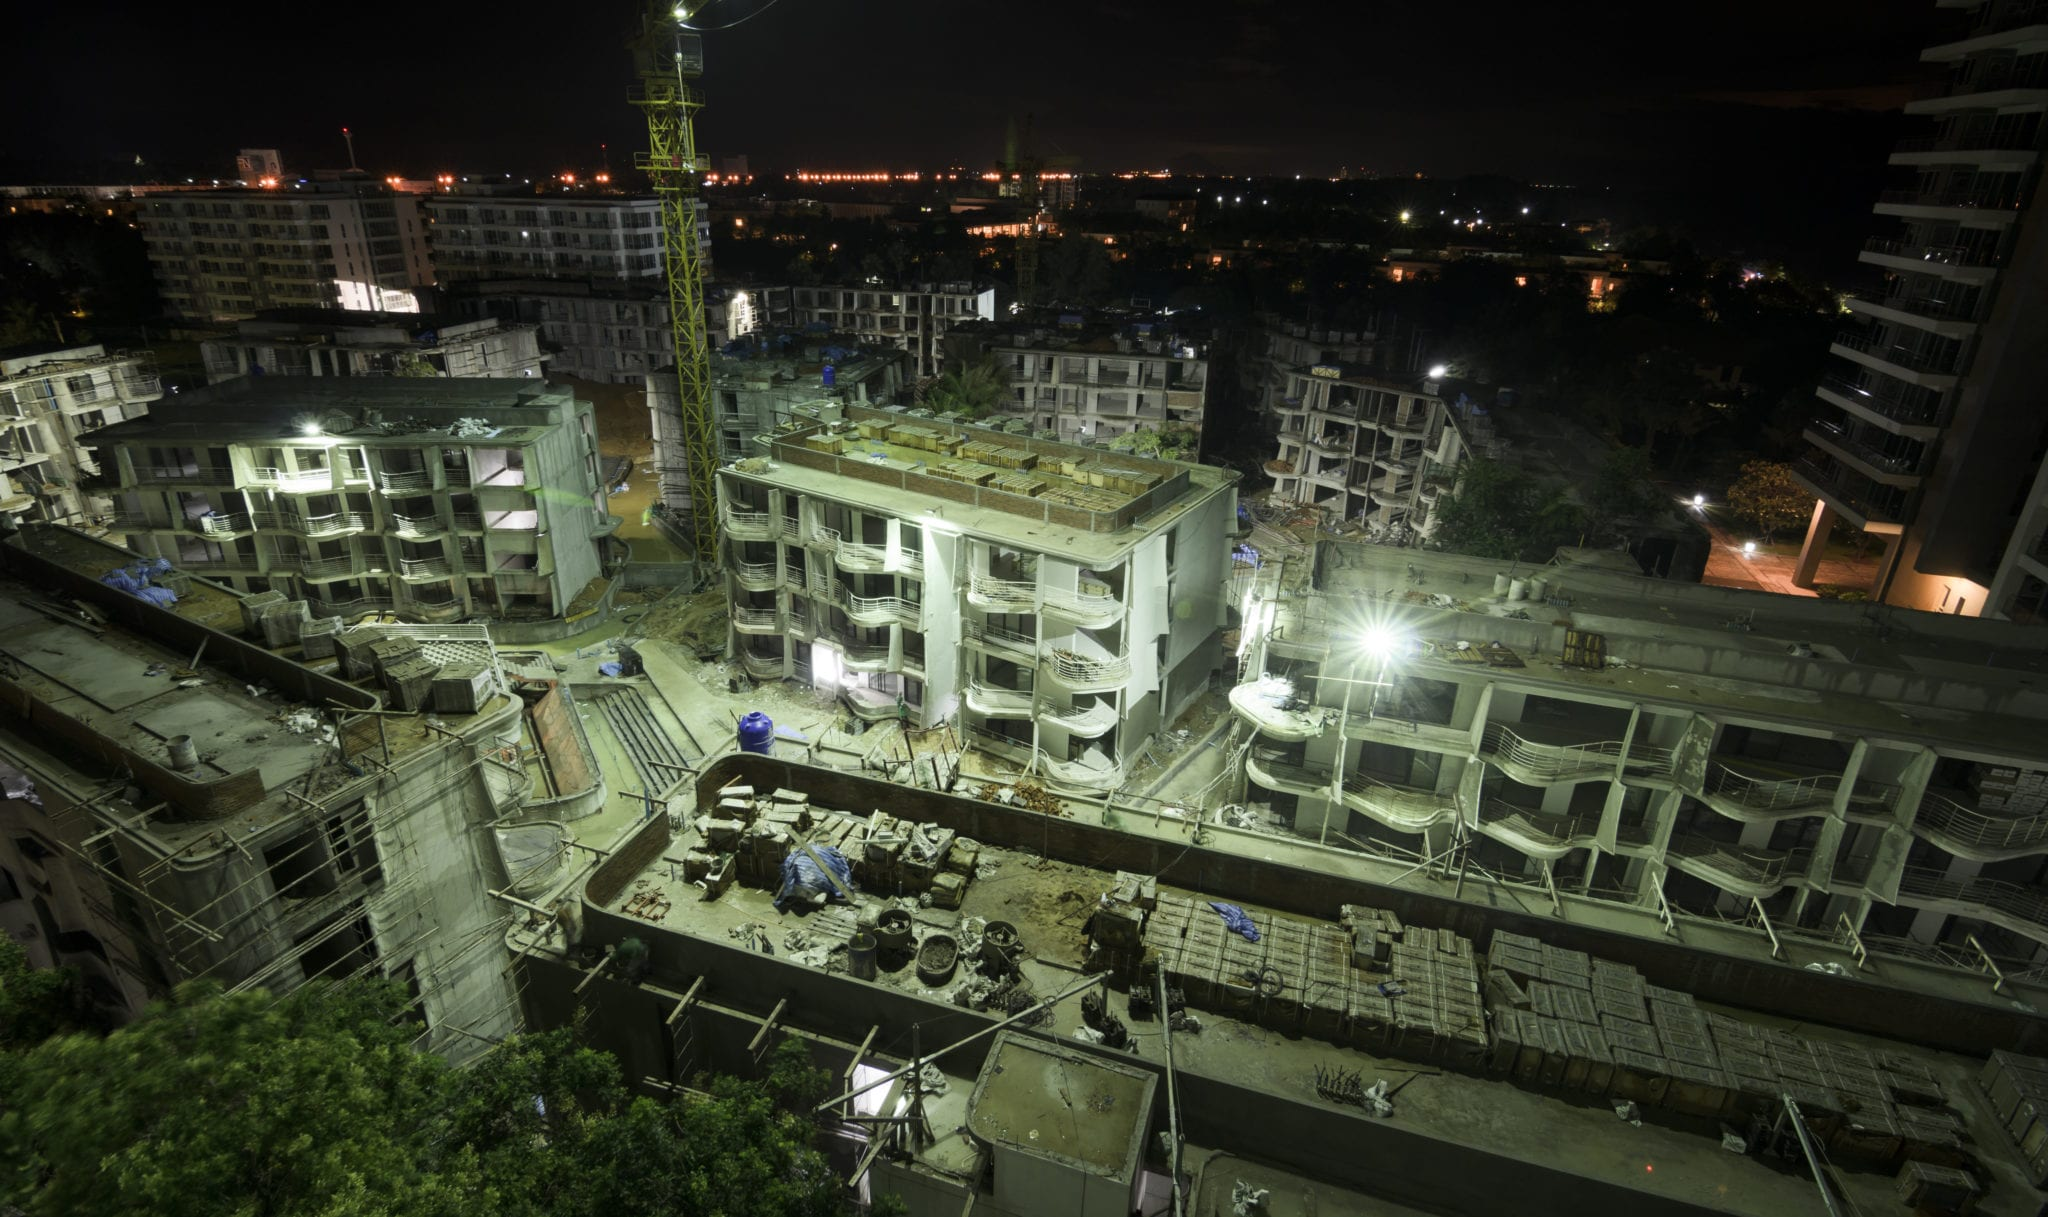 construction night work plan